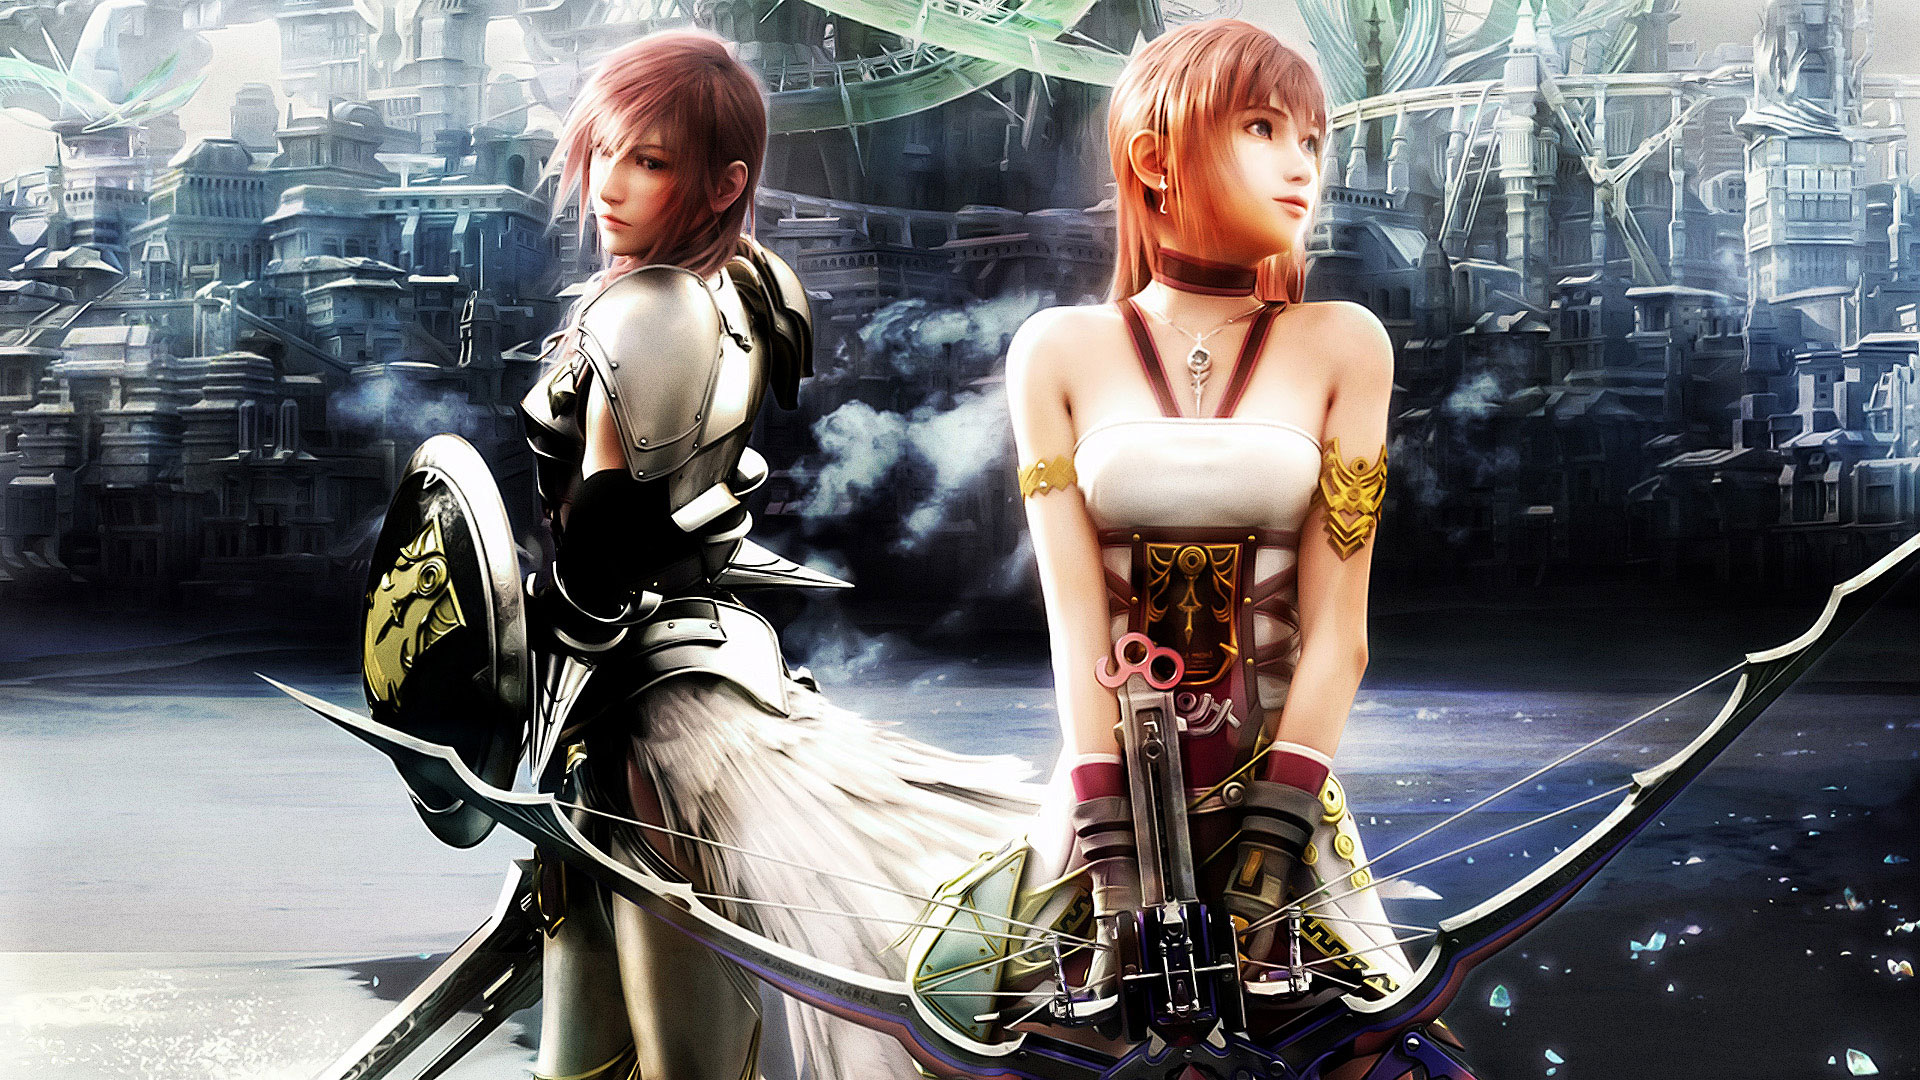 Final Fantasy XIII 2 Wallpapers in HD Page 2 1920x1080